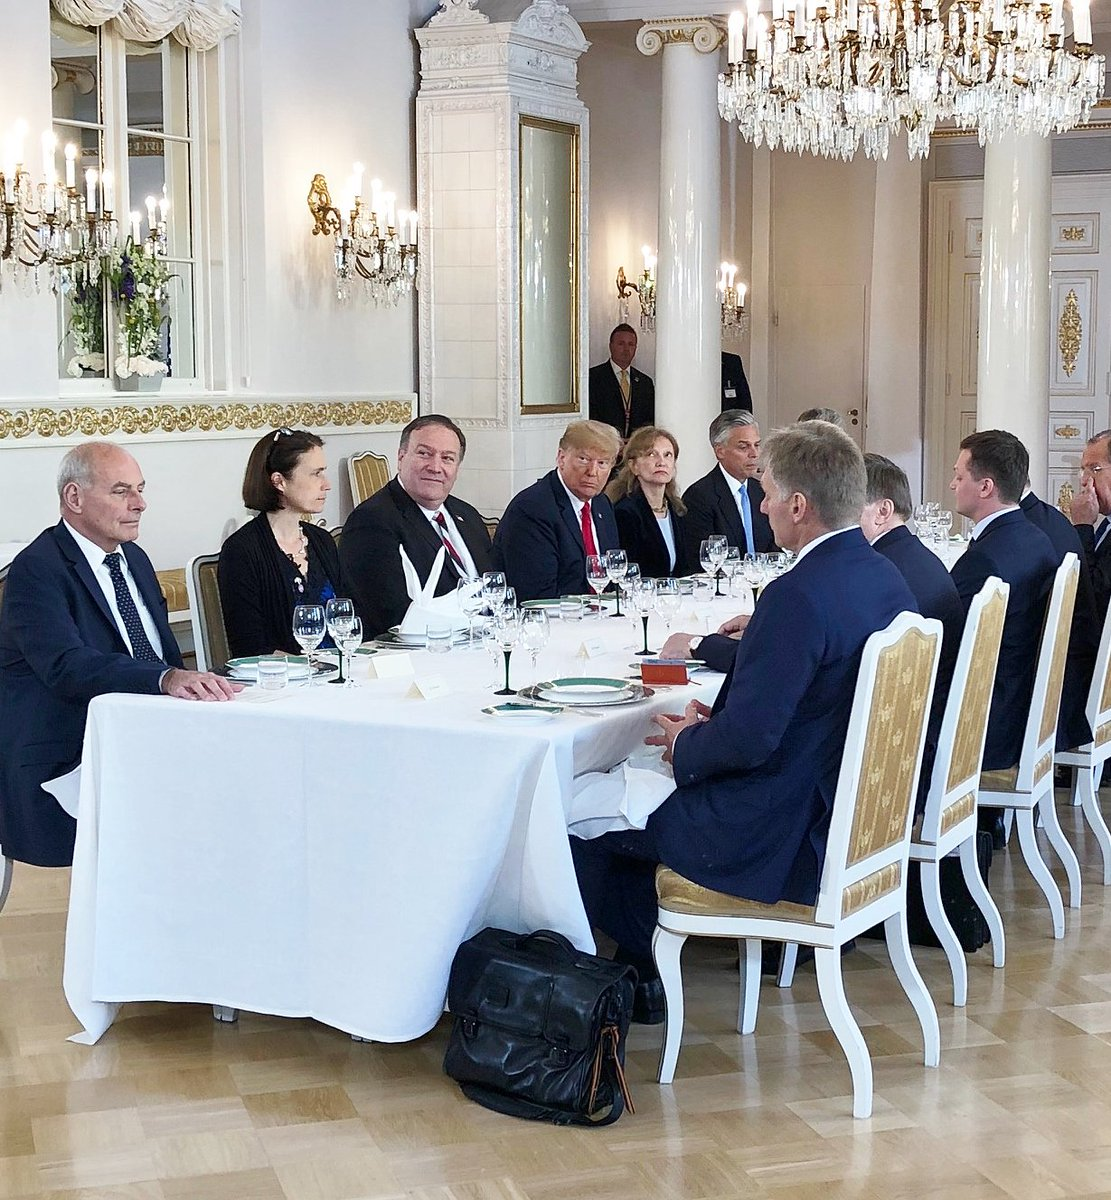 After their one-on-one meeting, Presidents Trump and Putin and delegation members sat down to lunch in the Hall of Mirrors. Asked how their meeting went, 'very good start,' said Pres Trump. (Pool photo by @anniekarni)